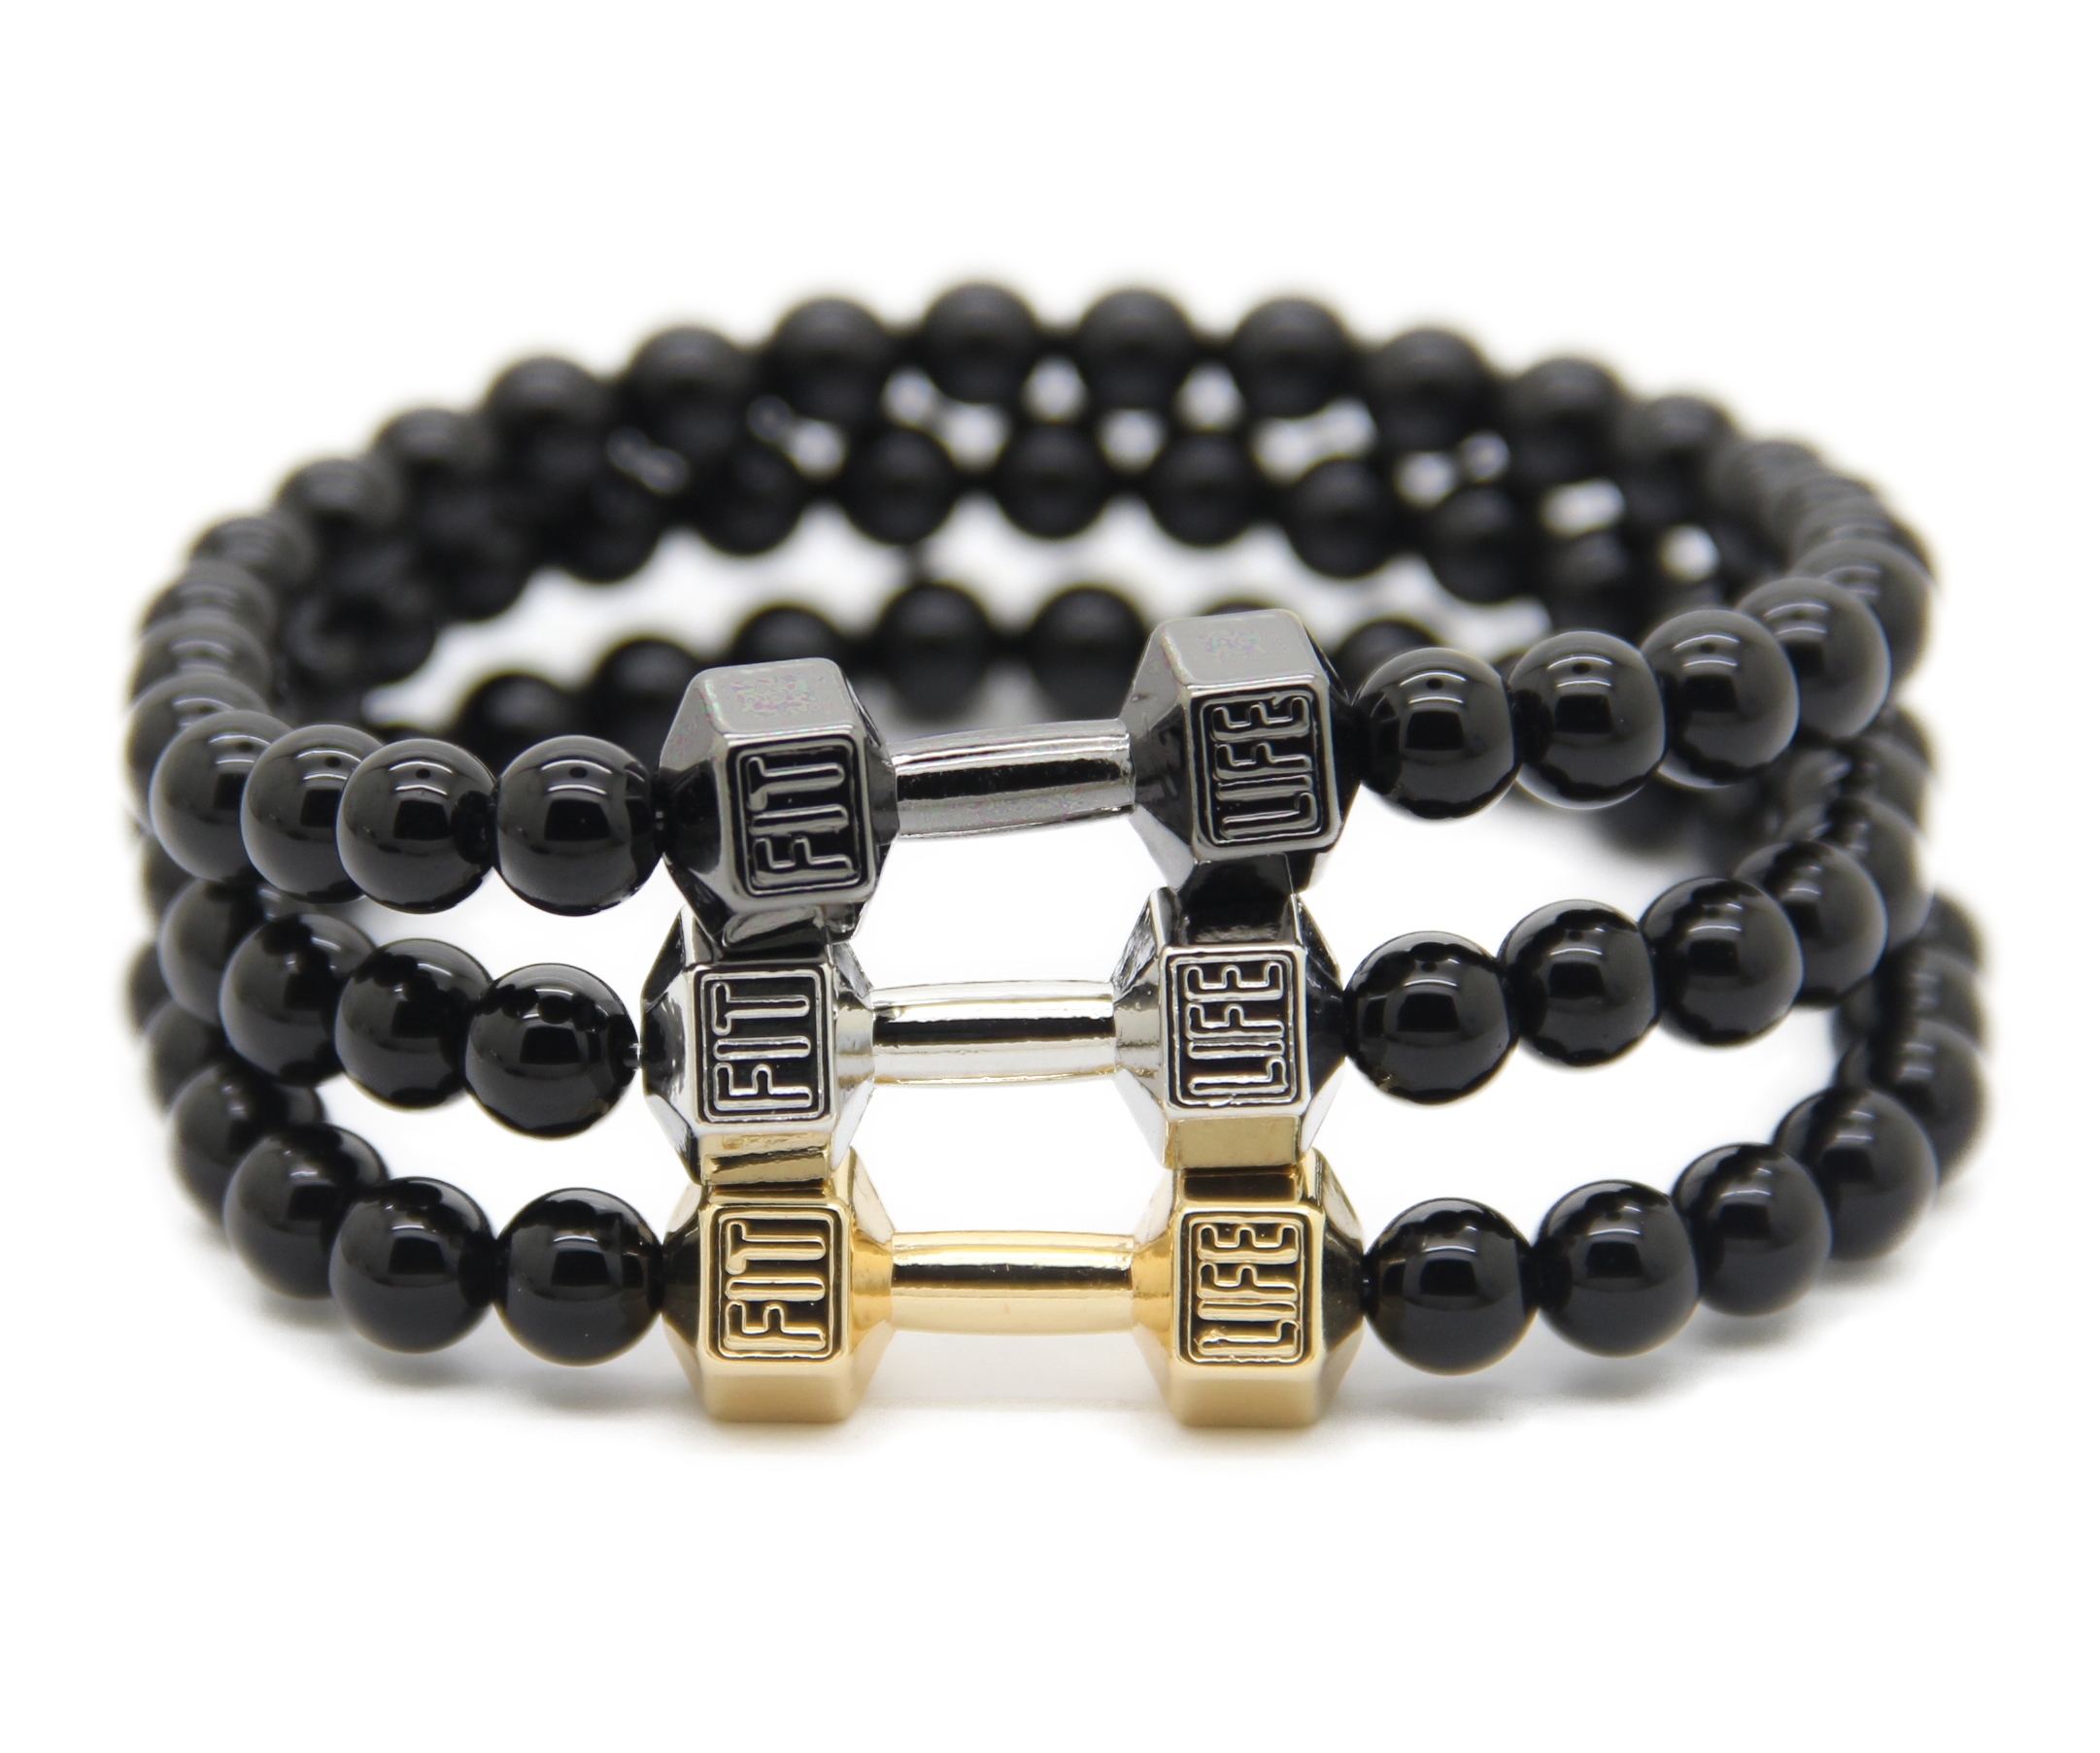 Retail Men's Fashion Energy Jewellry, 6mm Black Round Beads with Alloy Metal Fitness Dumbbell Charm Bracelets(China (Mainland))